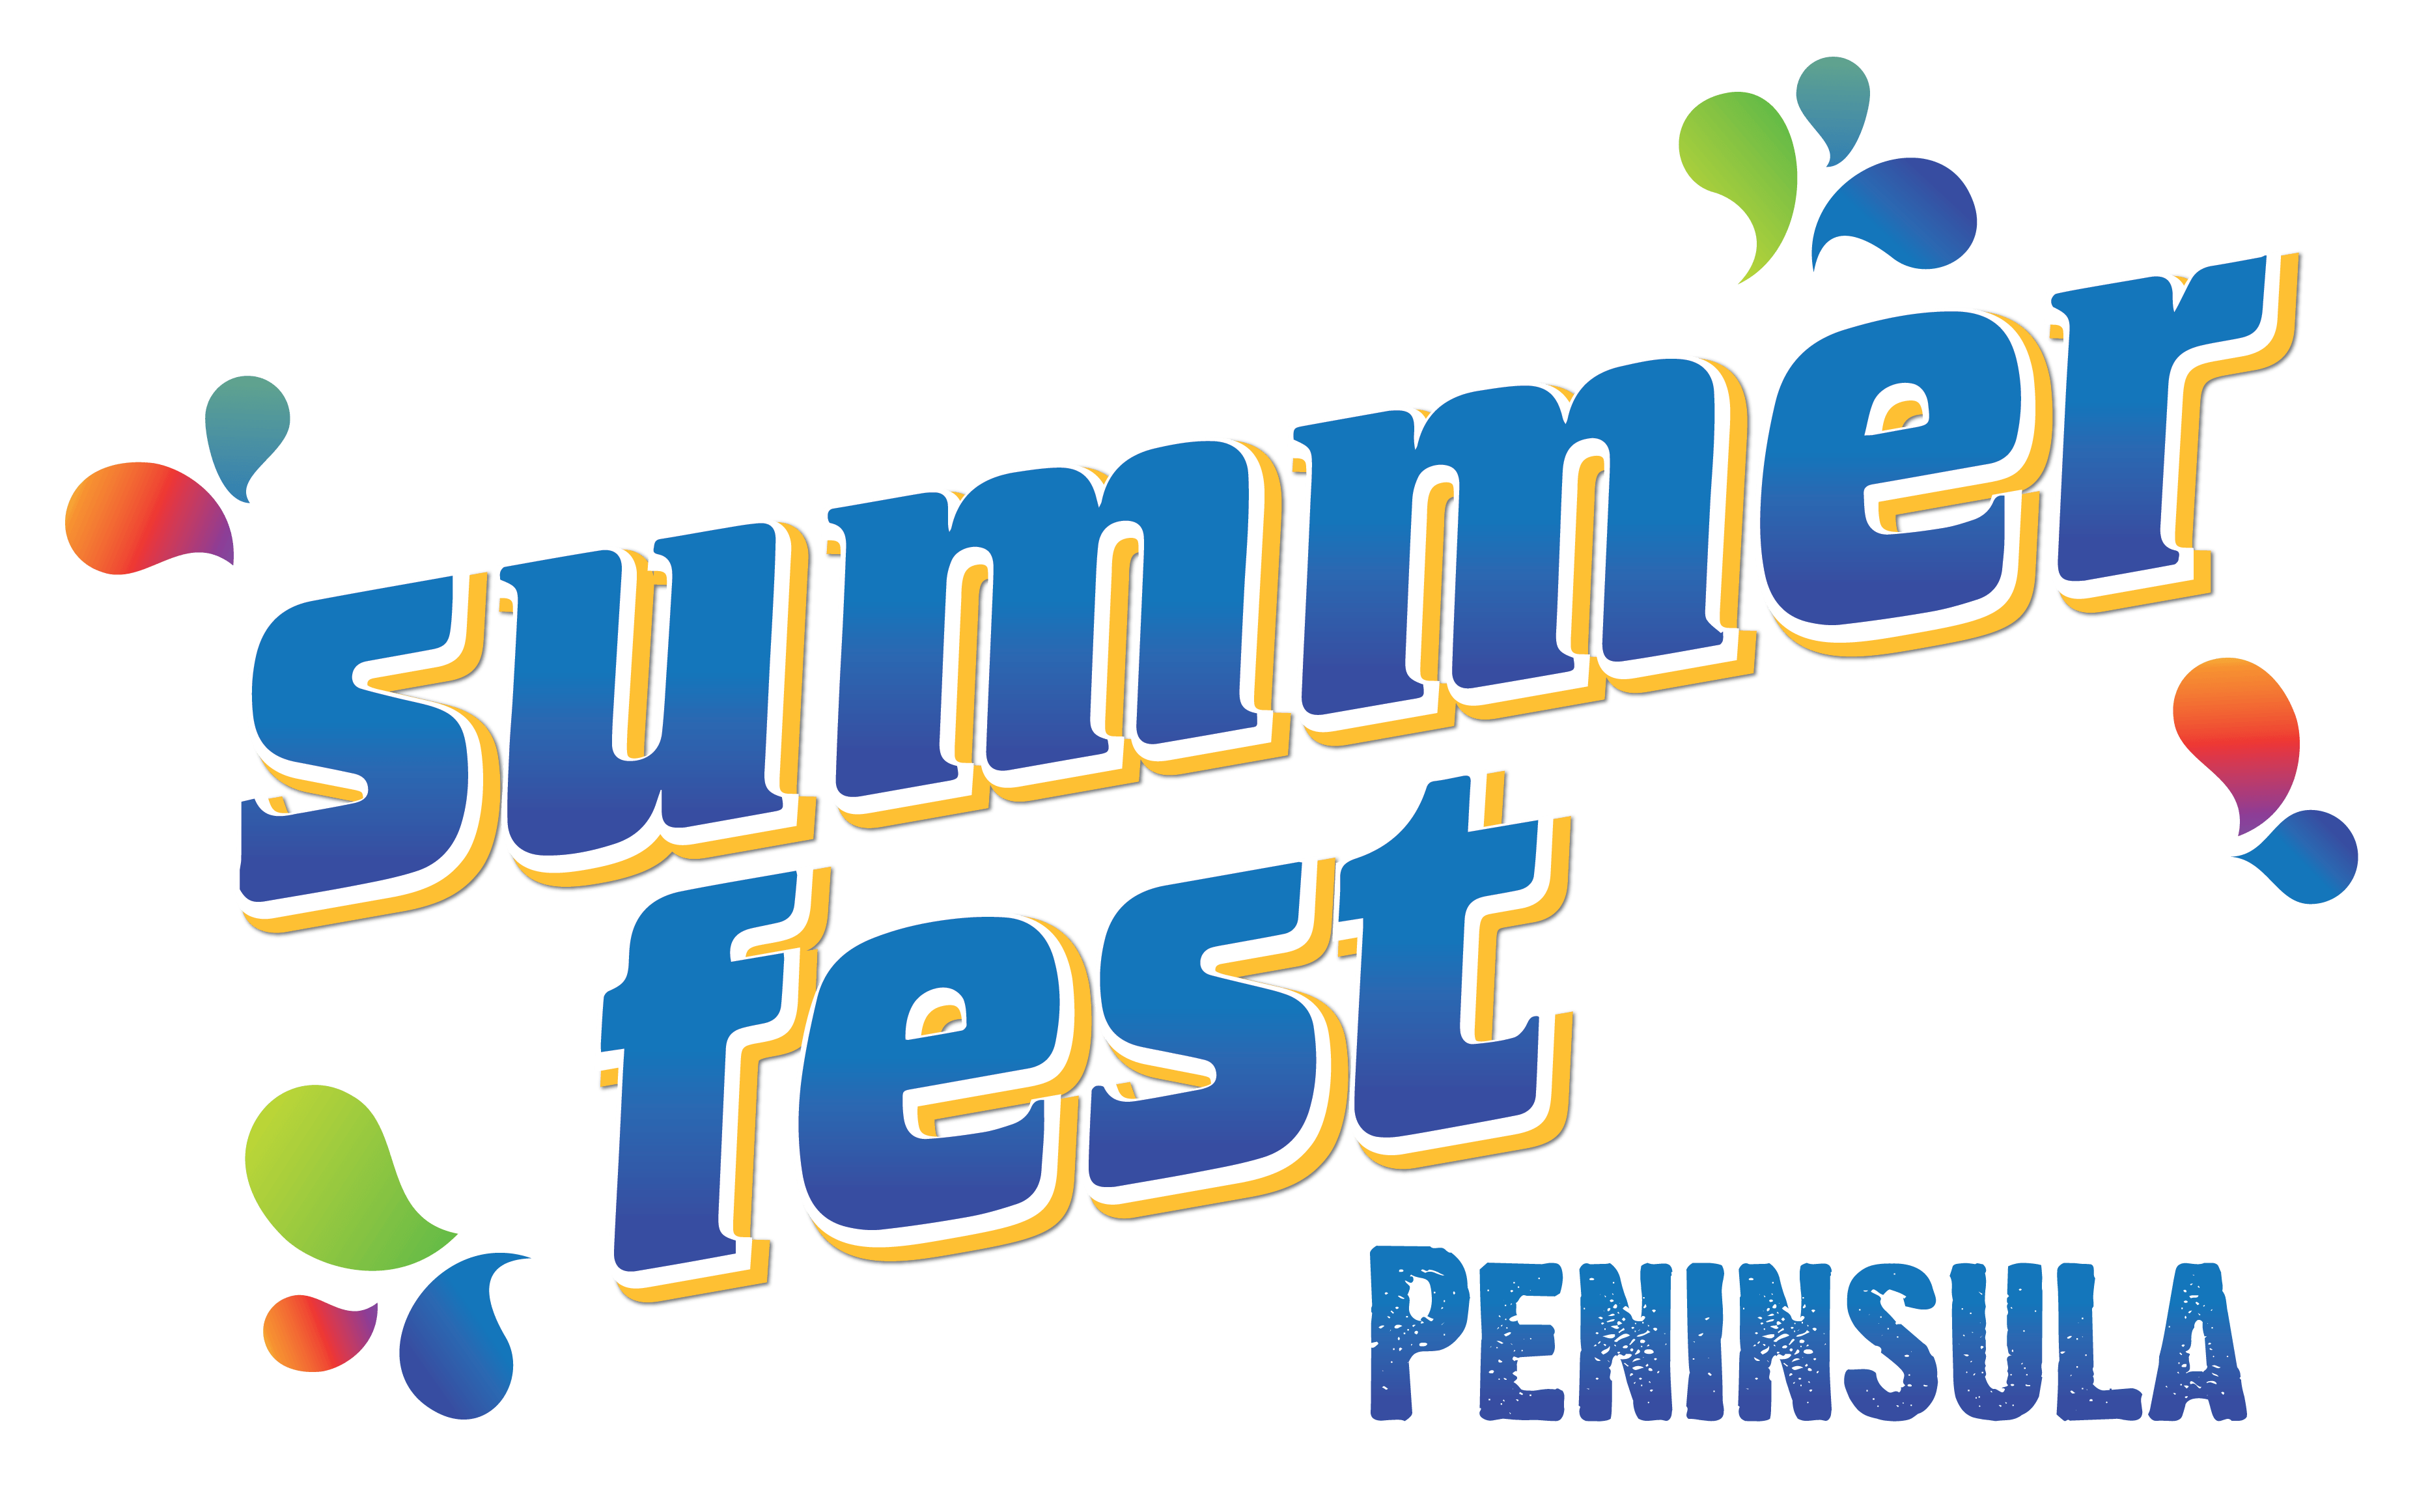 Summerfest Peninsula